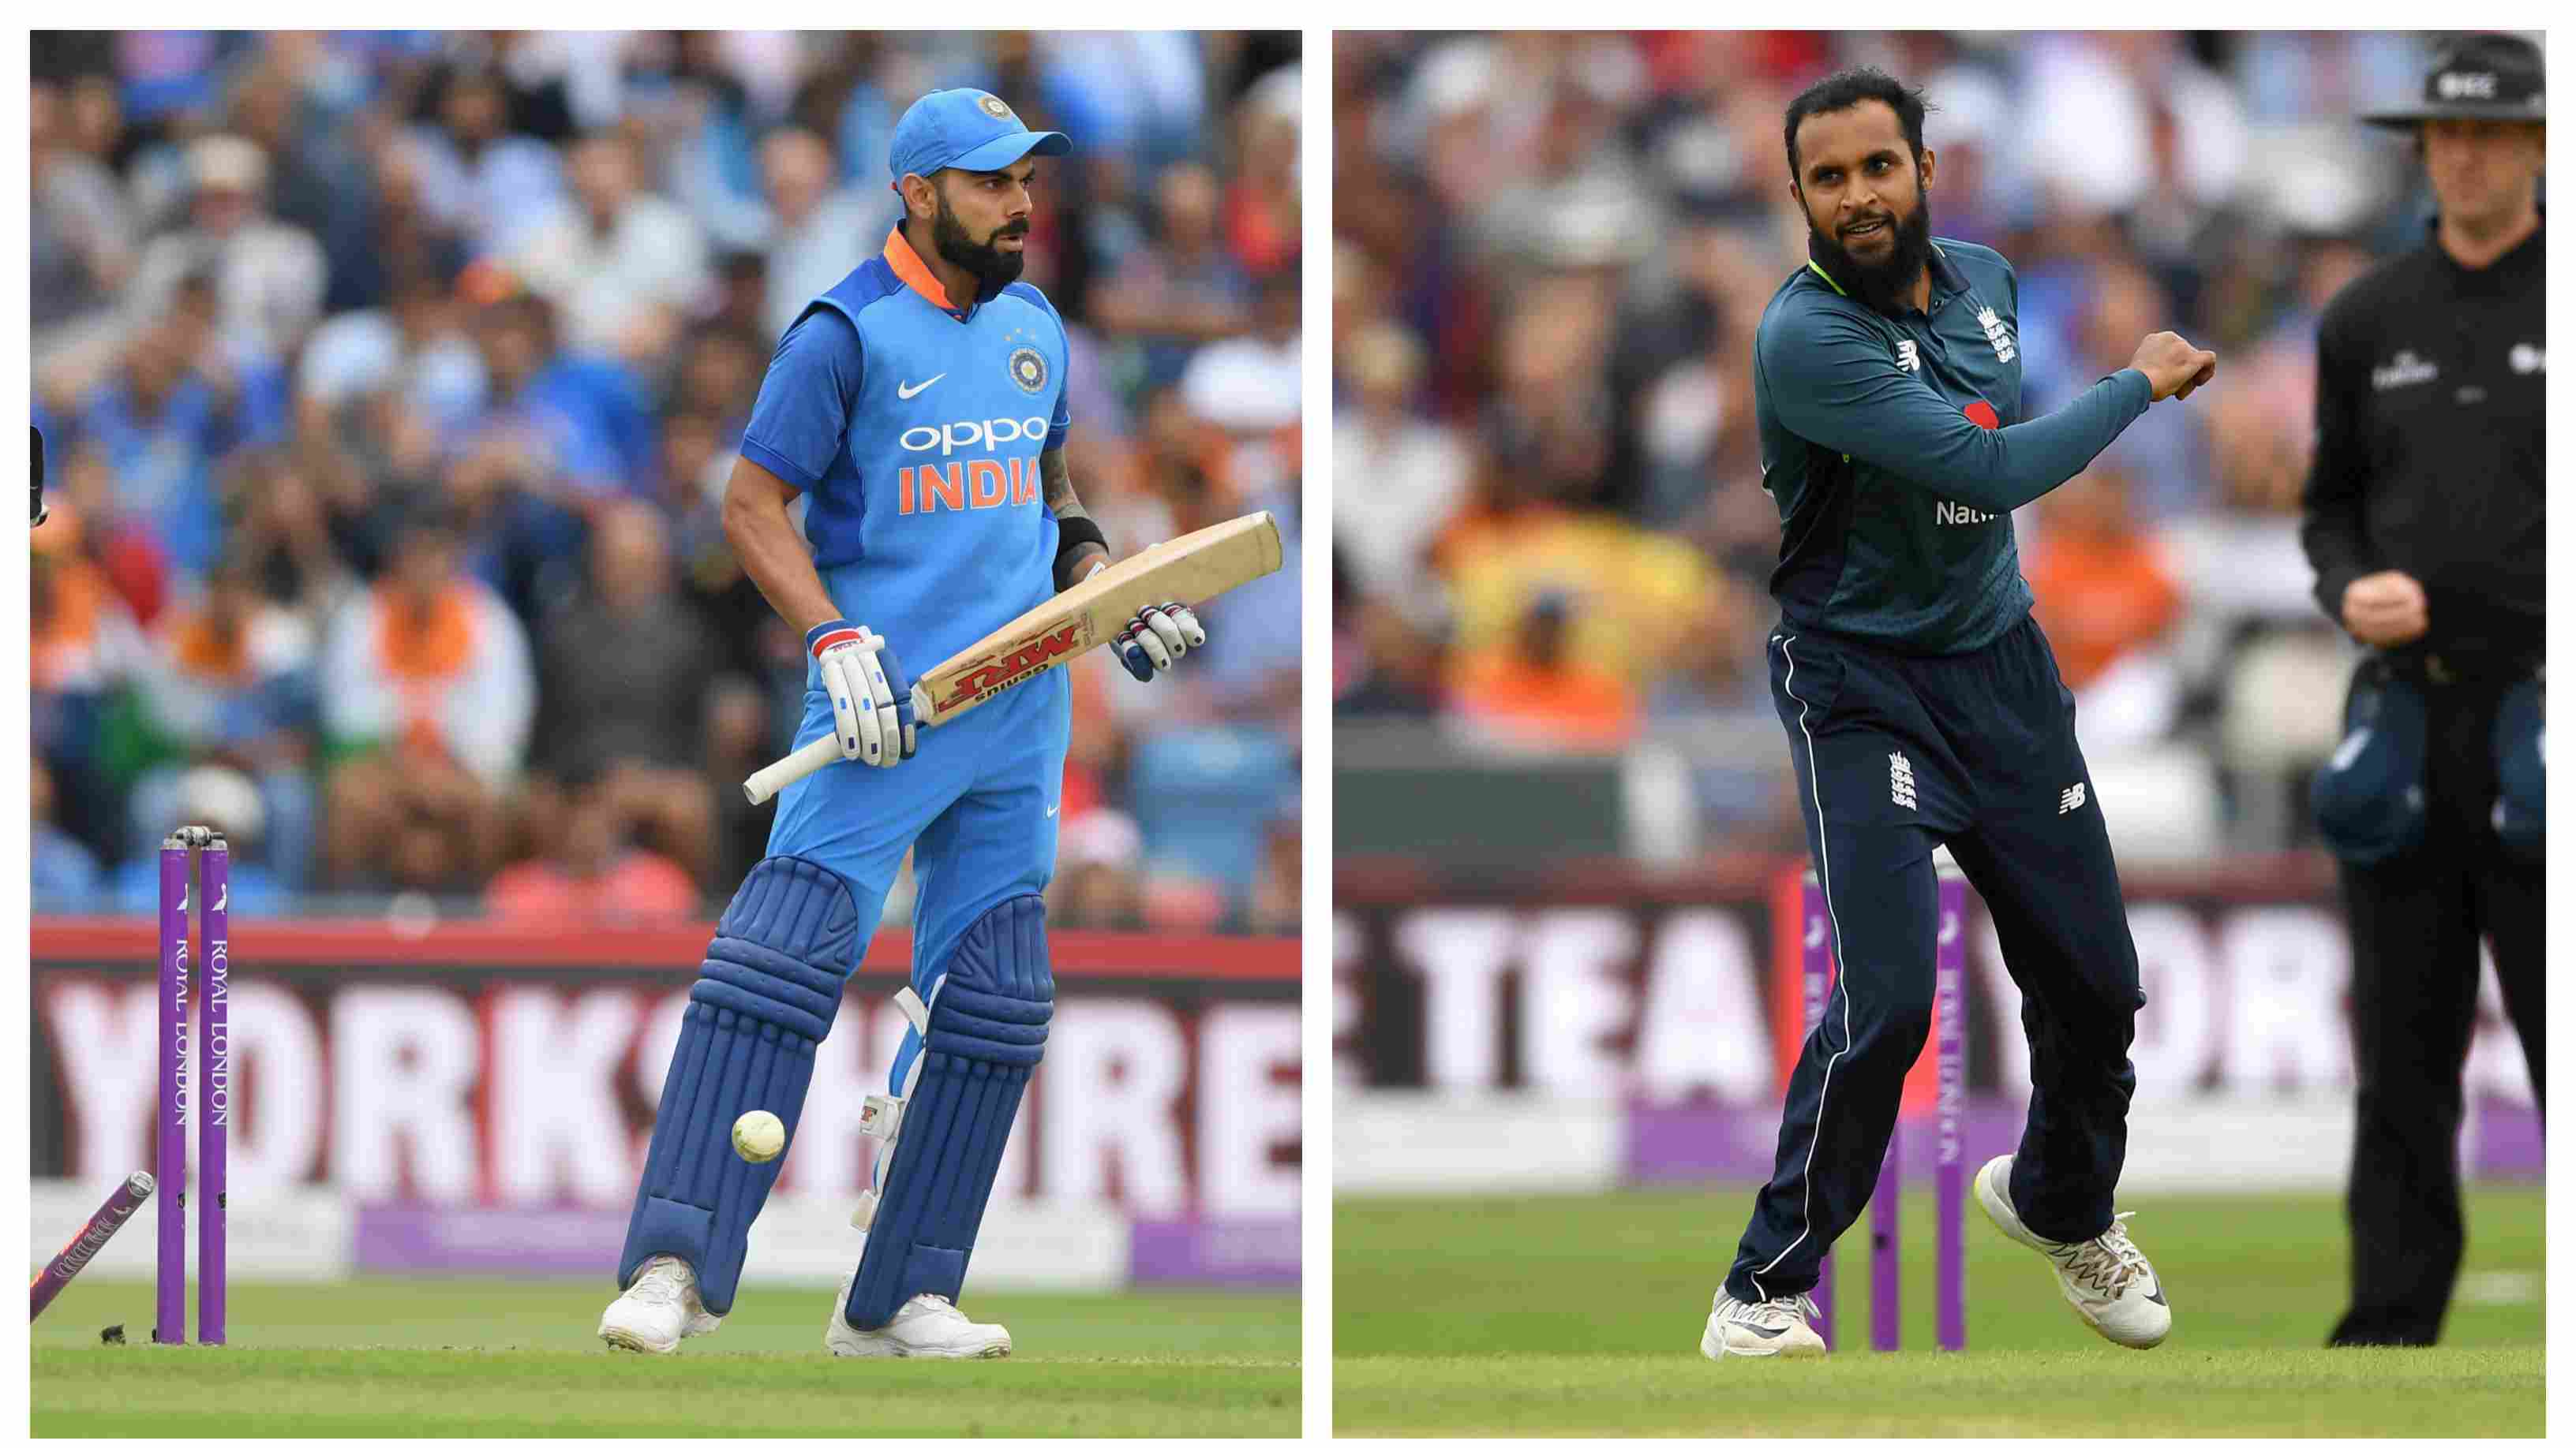 ENG v IND 2018: Twitter reacts as England bowlers restrict India to a moderate total of 256